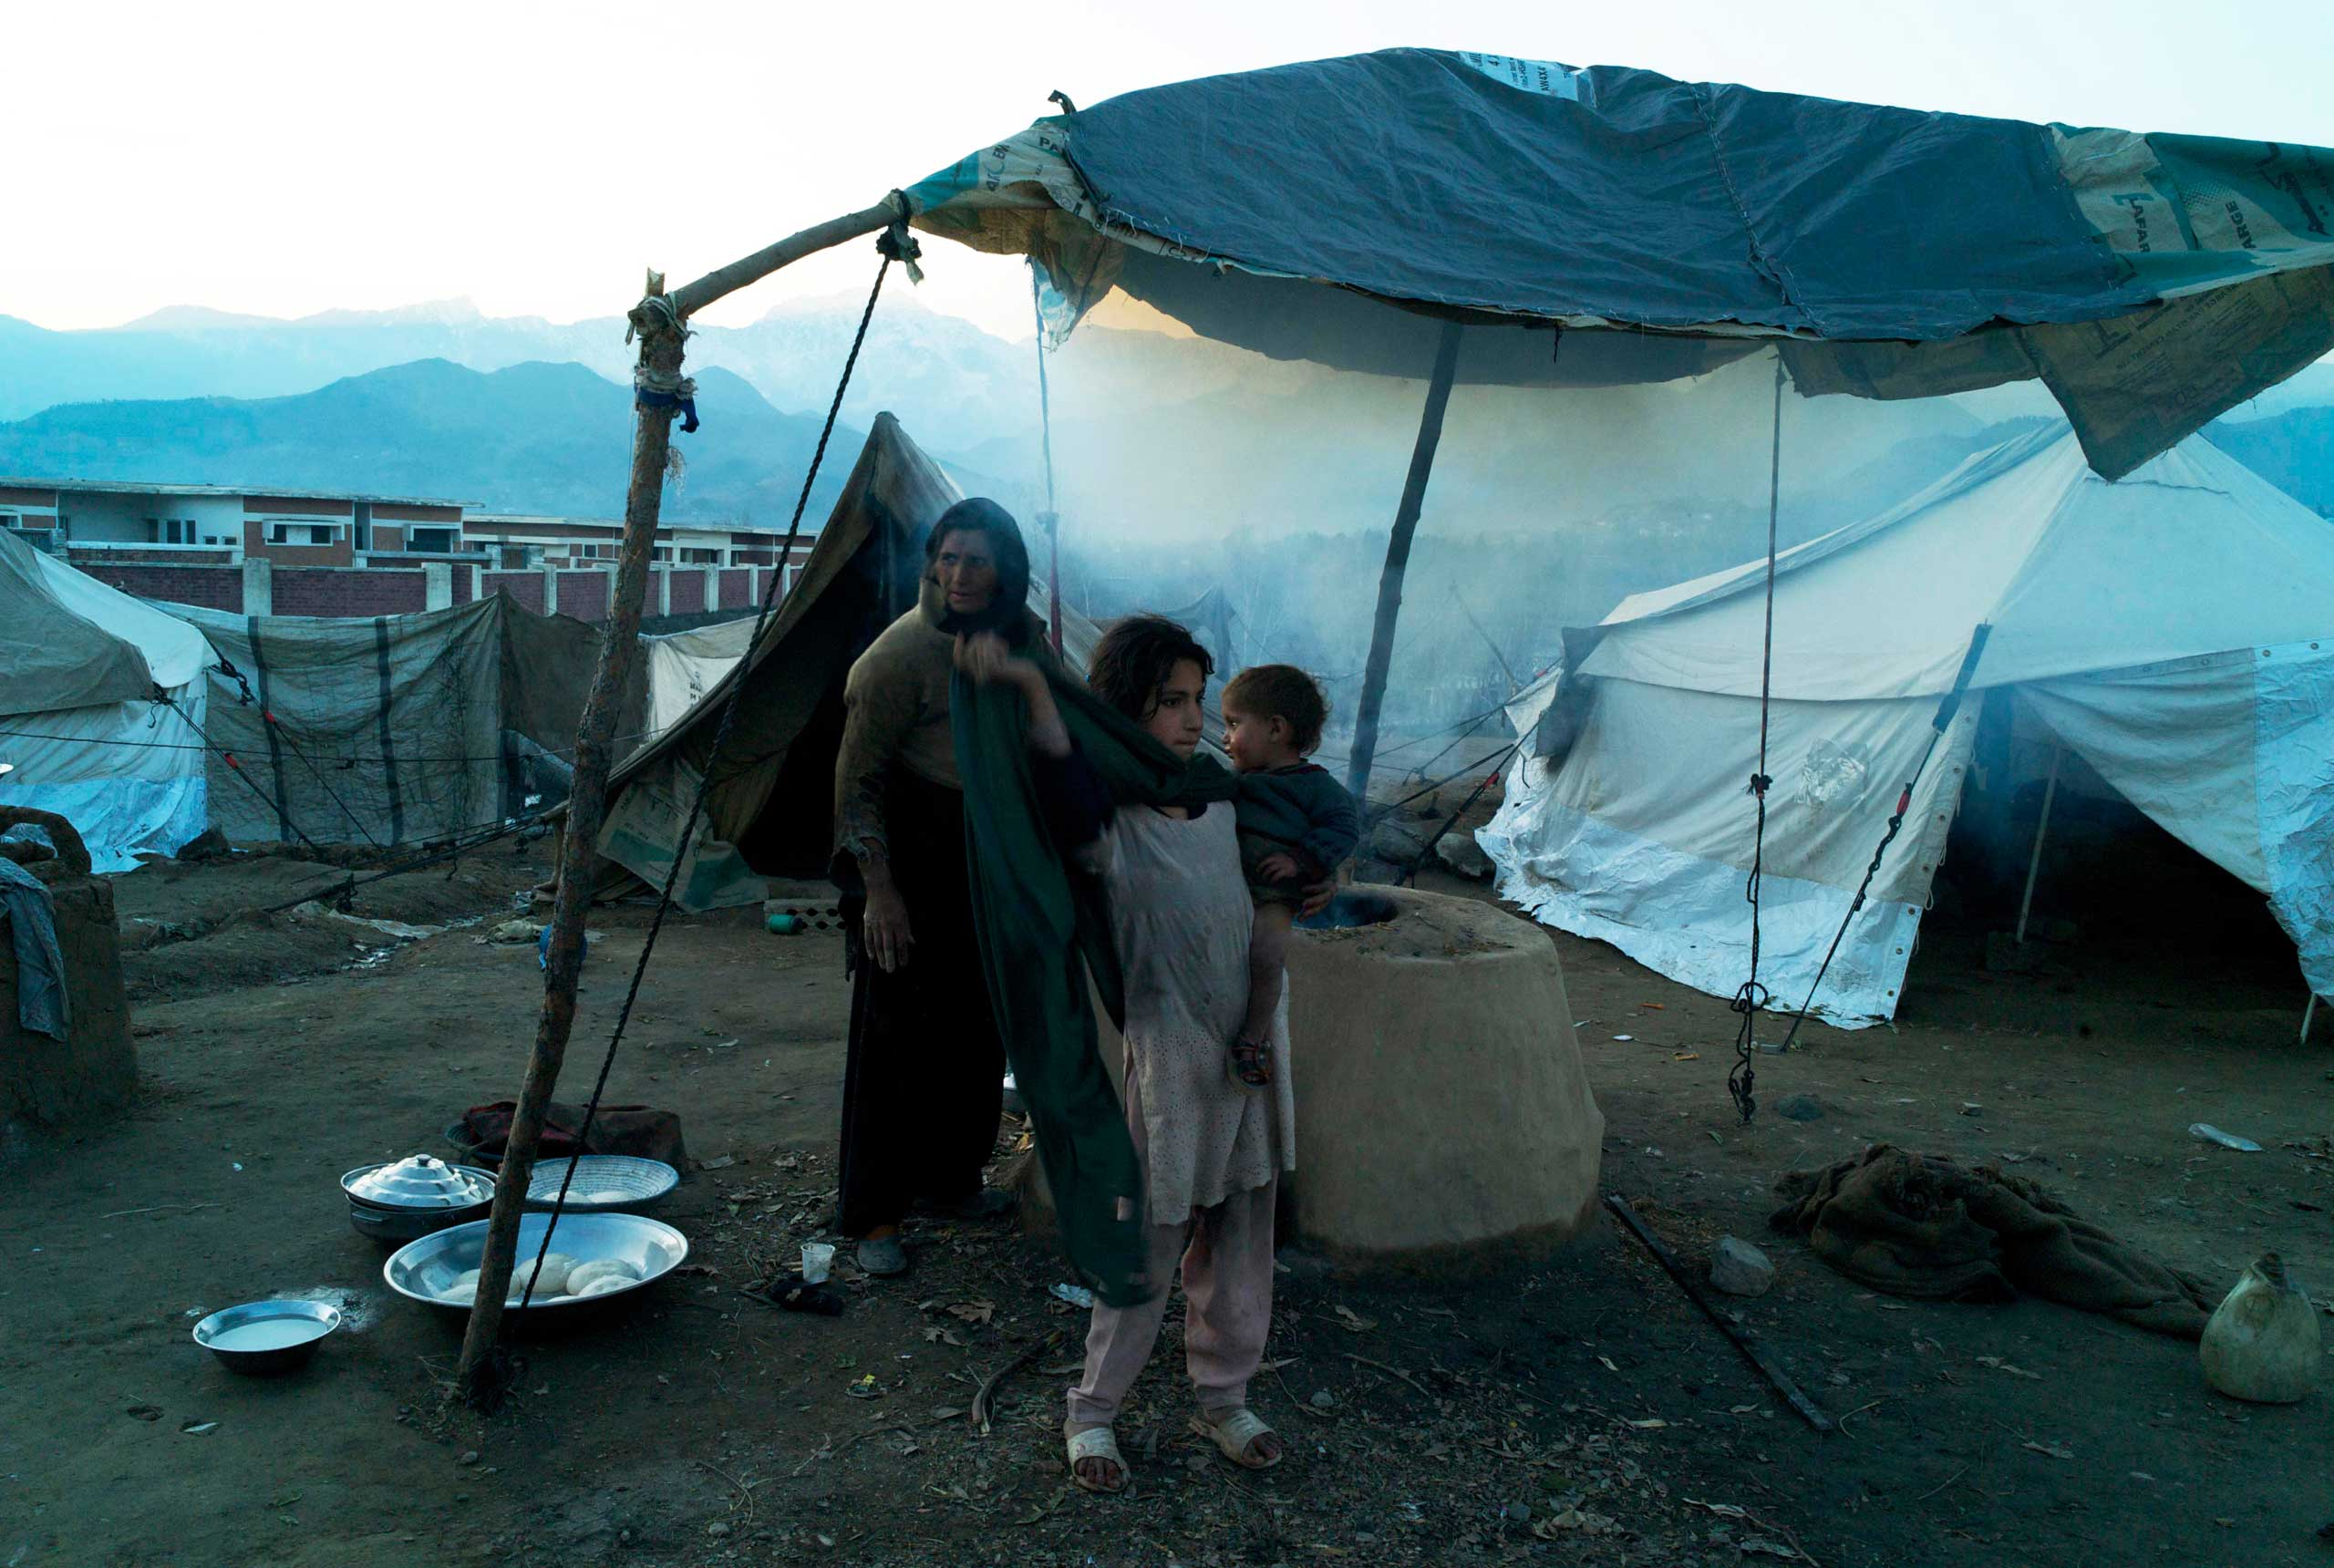 SADBARKALAI, PAKISTAN- FEBRUARY 2011                                Shrouded in smoke from a mud built tandoor, 12 year old Tayeeba holds her 18 month old baby brother Abbas as she helps her mother to prepare rotis for an evening meal in the cold winter's air outside their tent in Sadbarkalai.